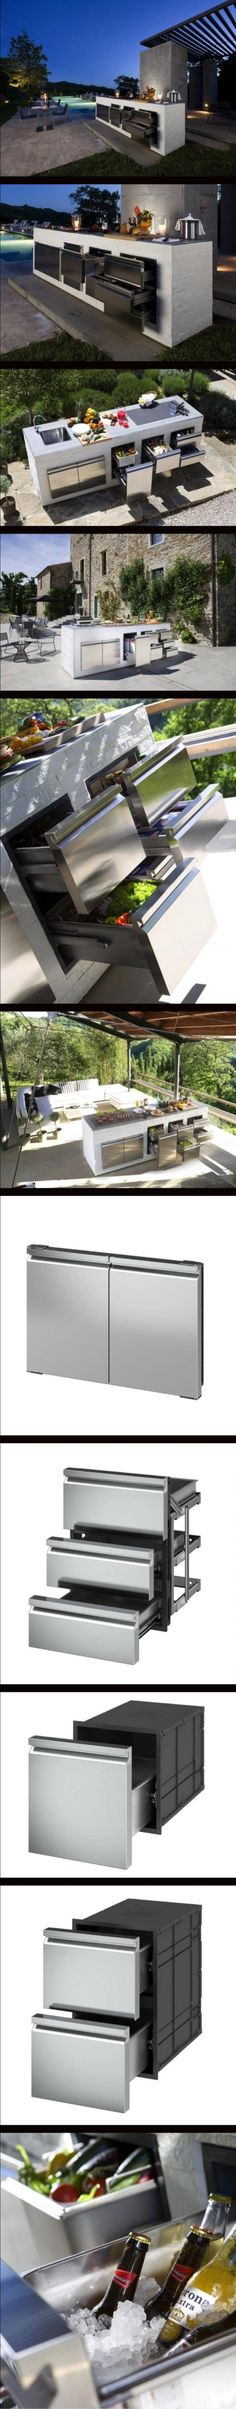 "RONDA OUTDOOR | Drawer for bar counter - Outdoor kitchen doors and drawers Ronda Outdoors is a line of doors, drawers and accessories in stainless steel for your ""ice"" department, developed to integrate perfectly with your outdoor cooking area. Finally you can keep everything you need cool in an elegant, secure and clean space.  Open the drawers and you will find the stainless steel containers full of ice. In another drawer you can have a waste container and all comfortably positioned within…"